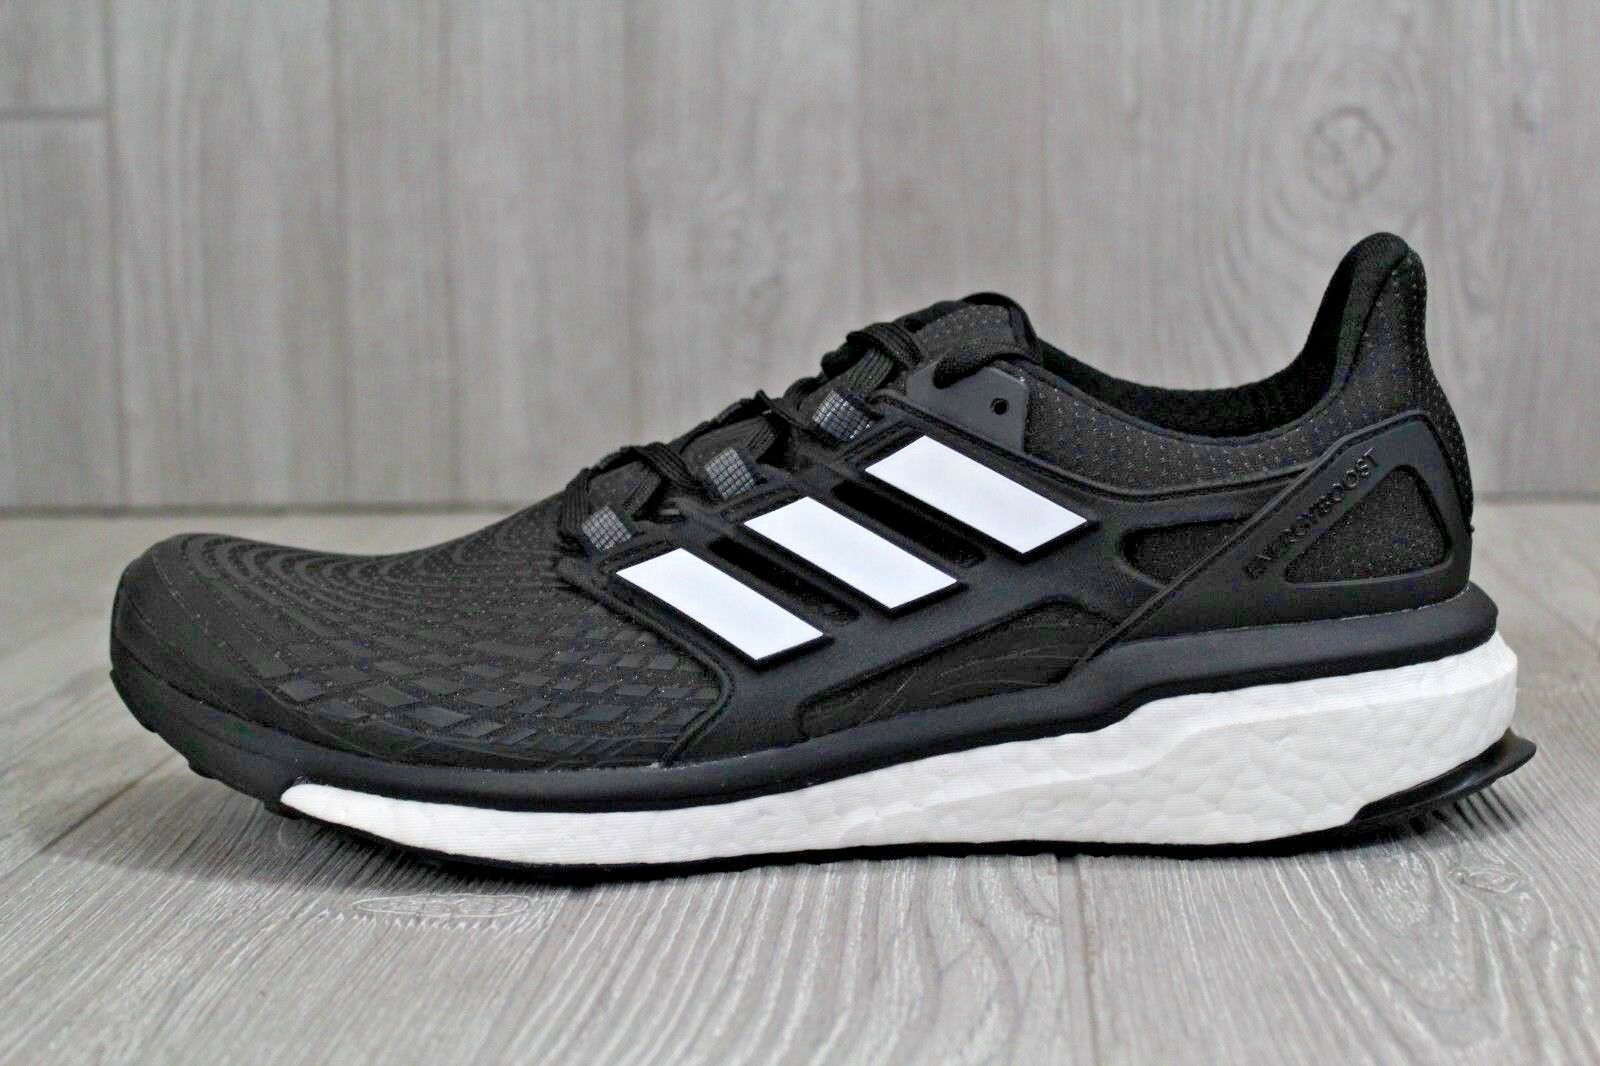 32 Adidas Energy Boost Men's Running shoes New Size 9.5 12.5 Black CG3359